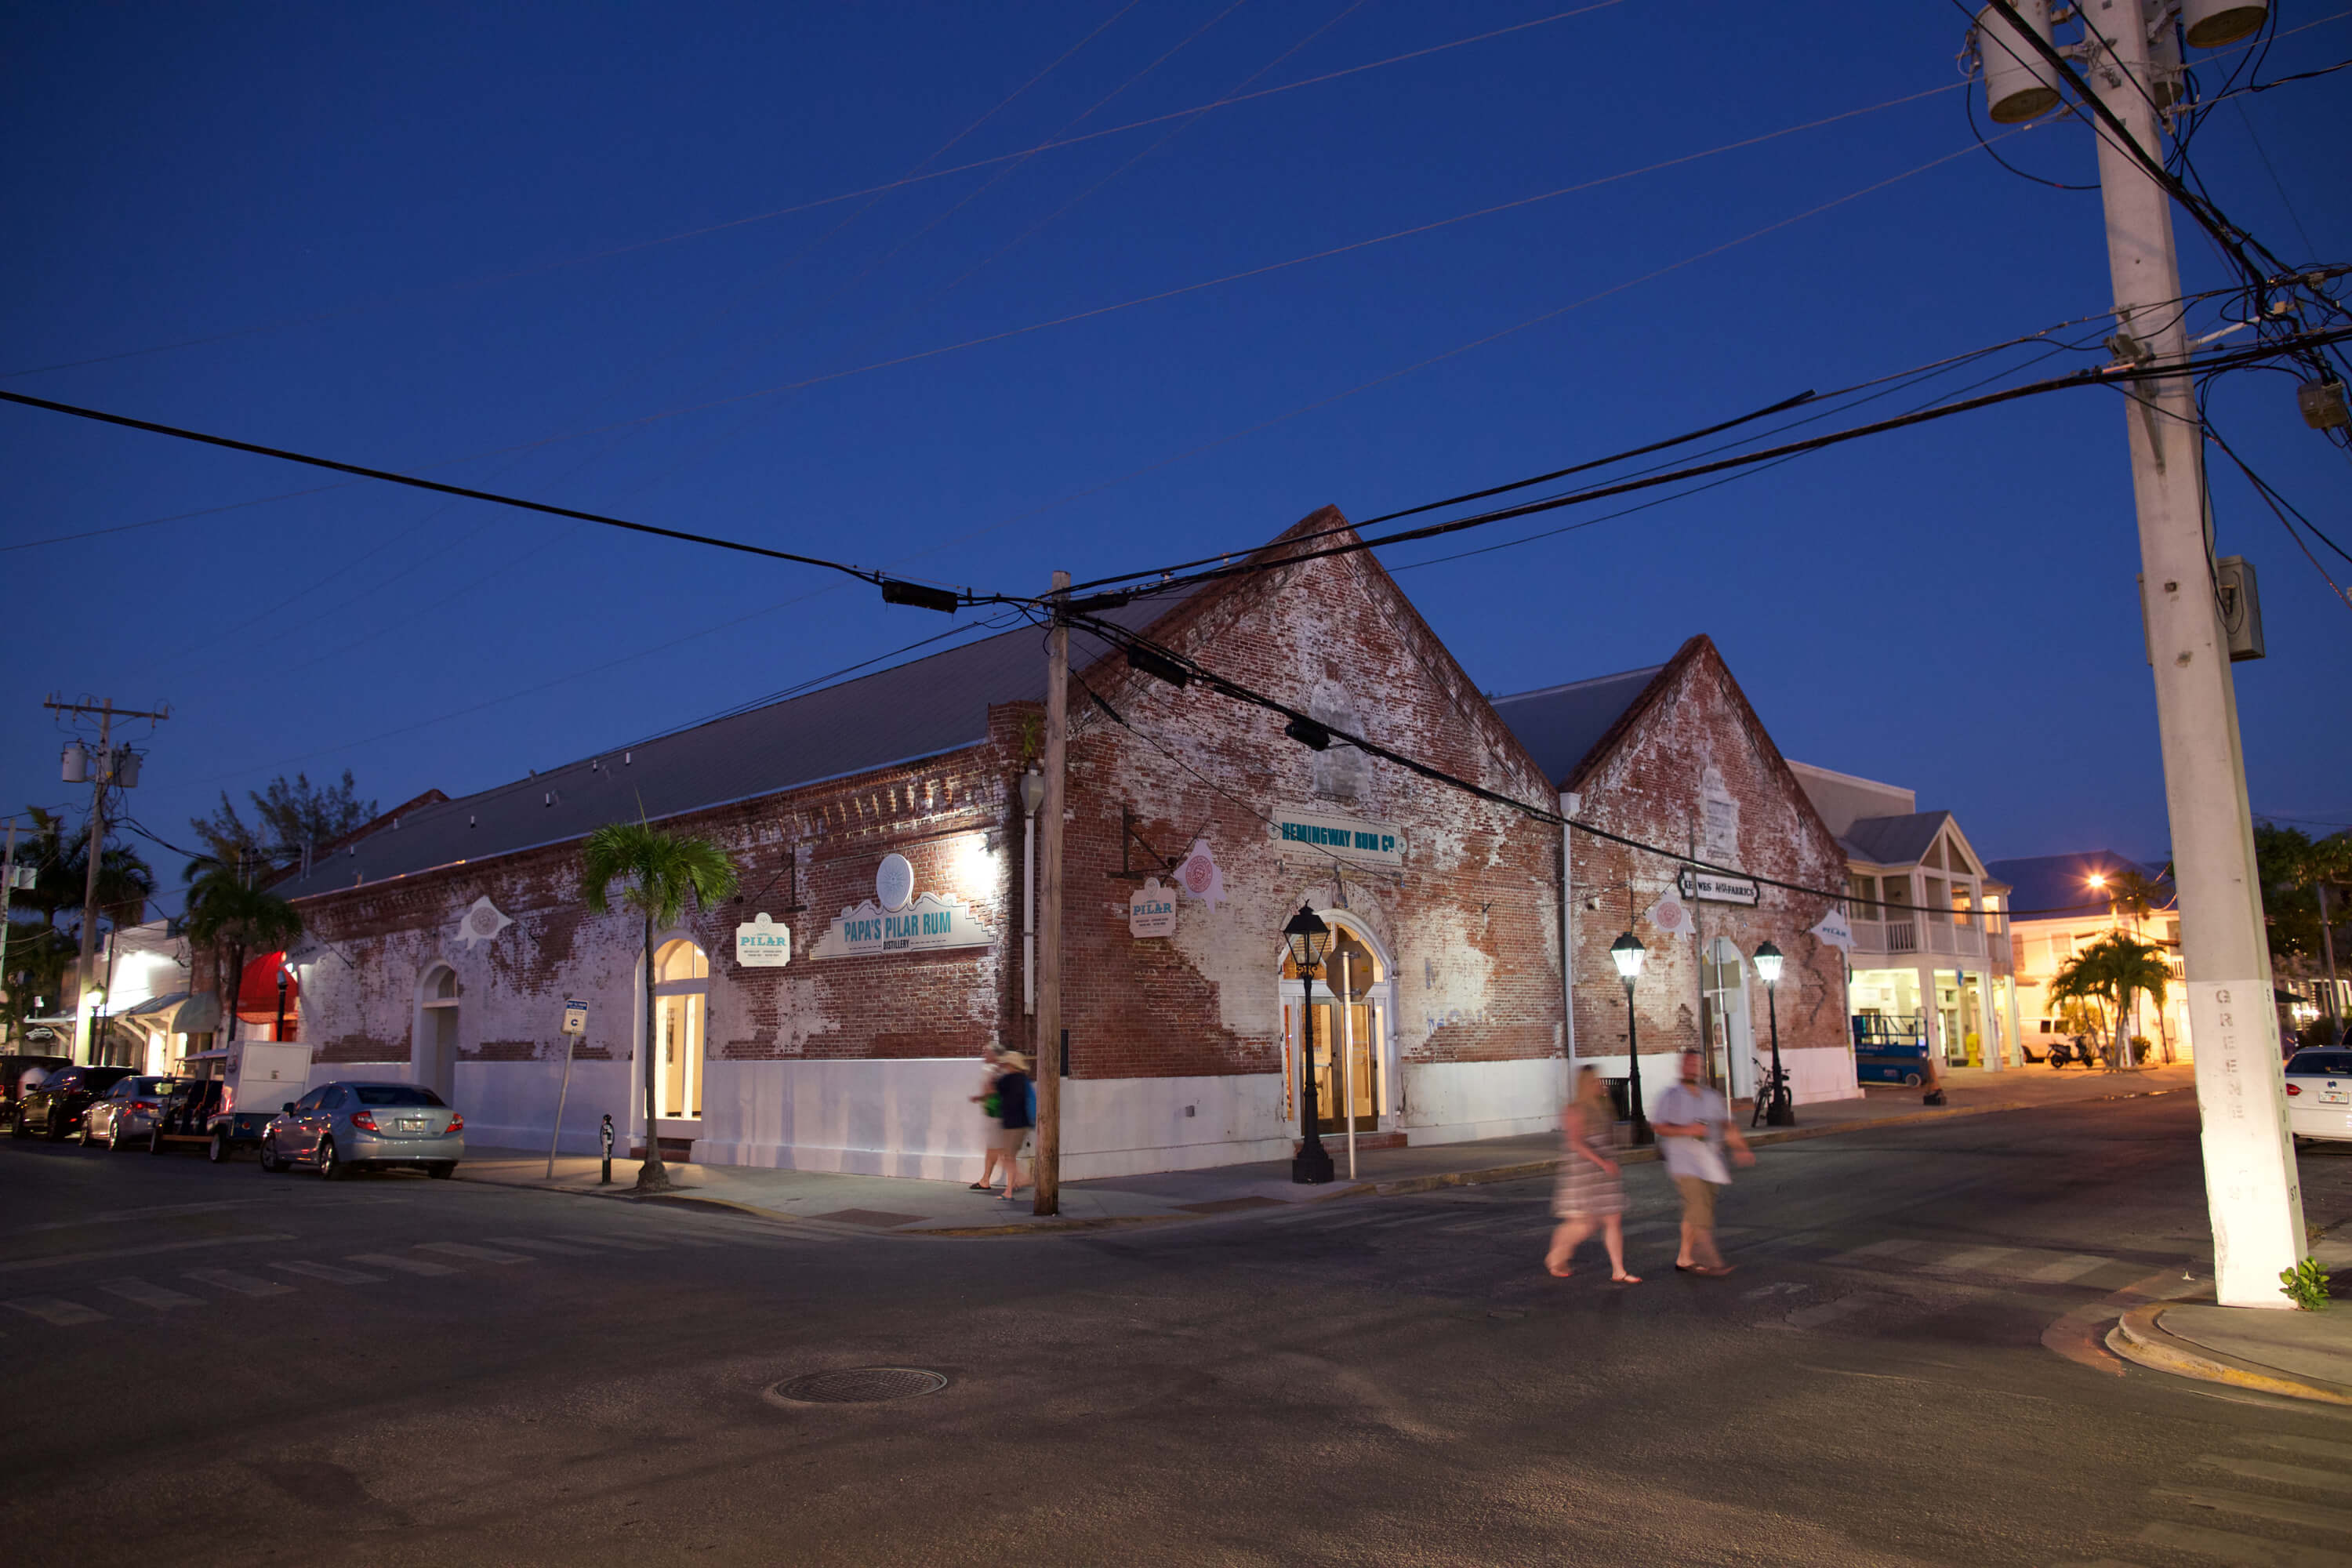 Papa's Pilar Rum Distillery & Experience Center Key West - What's Shakin' week of May 15, 2017